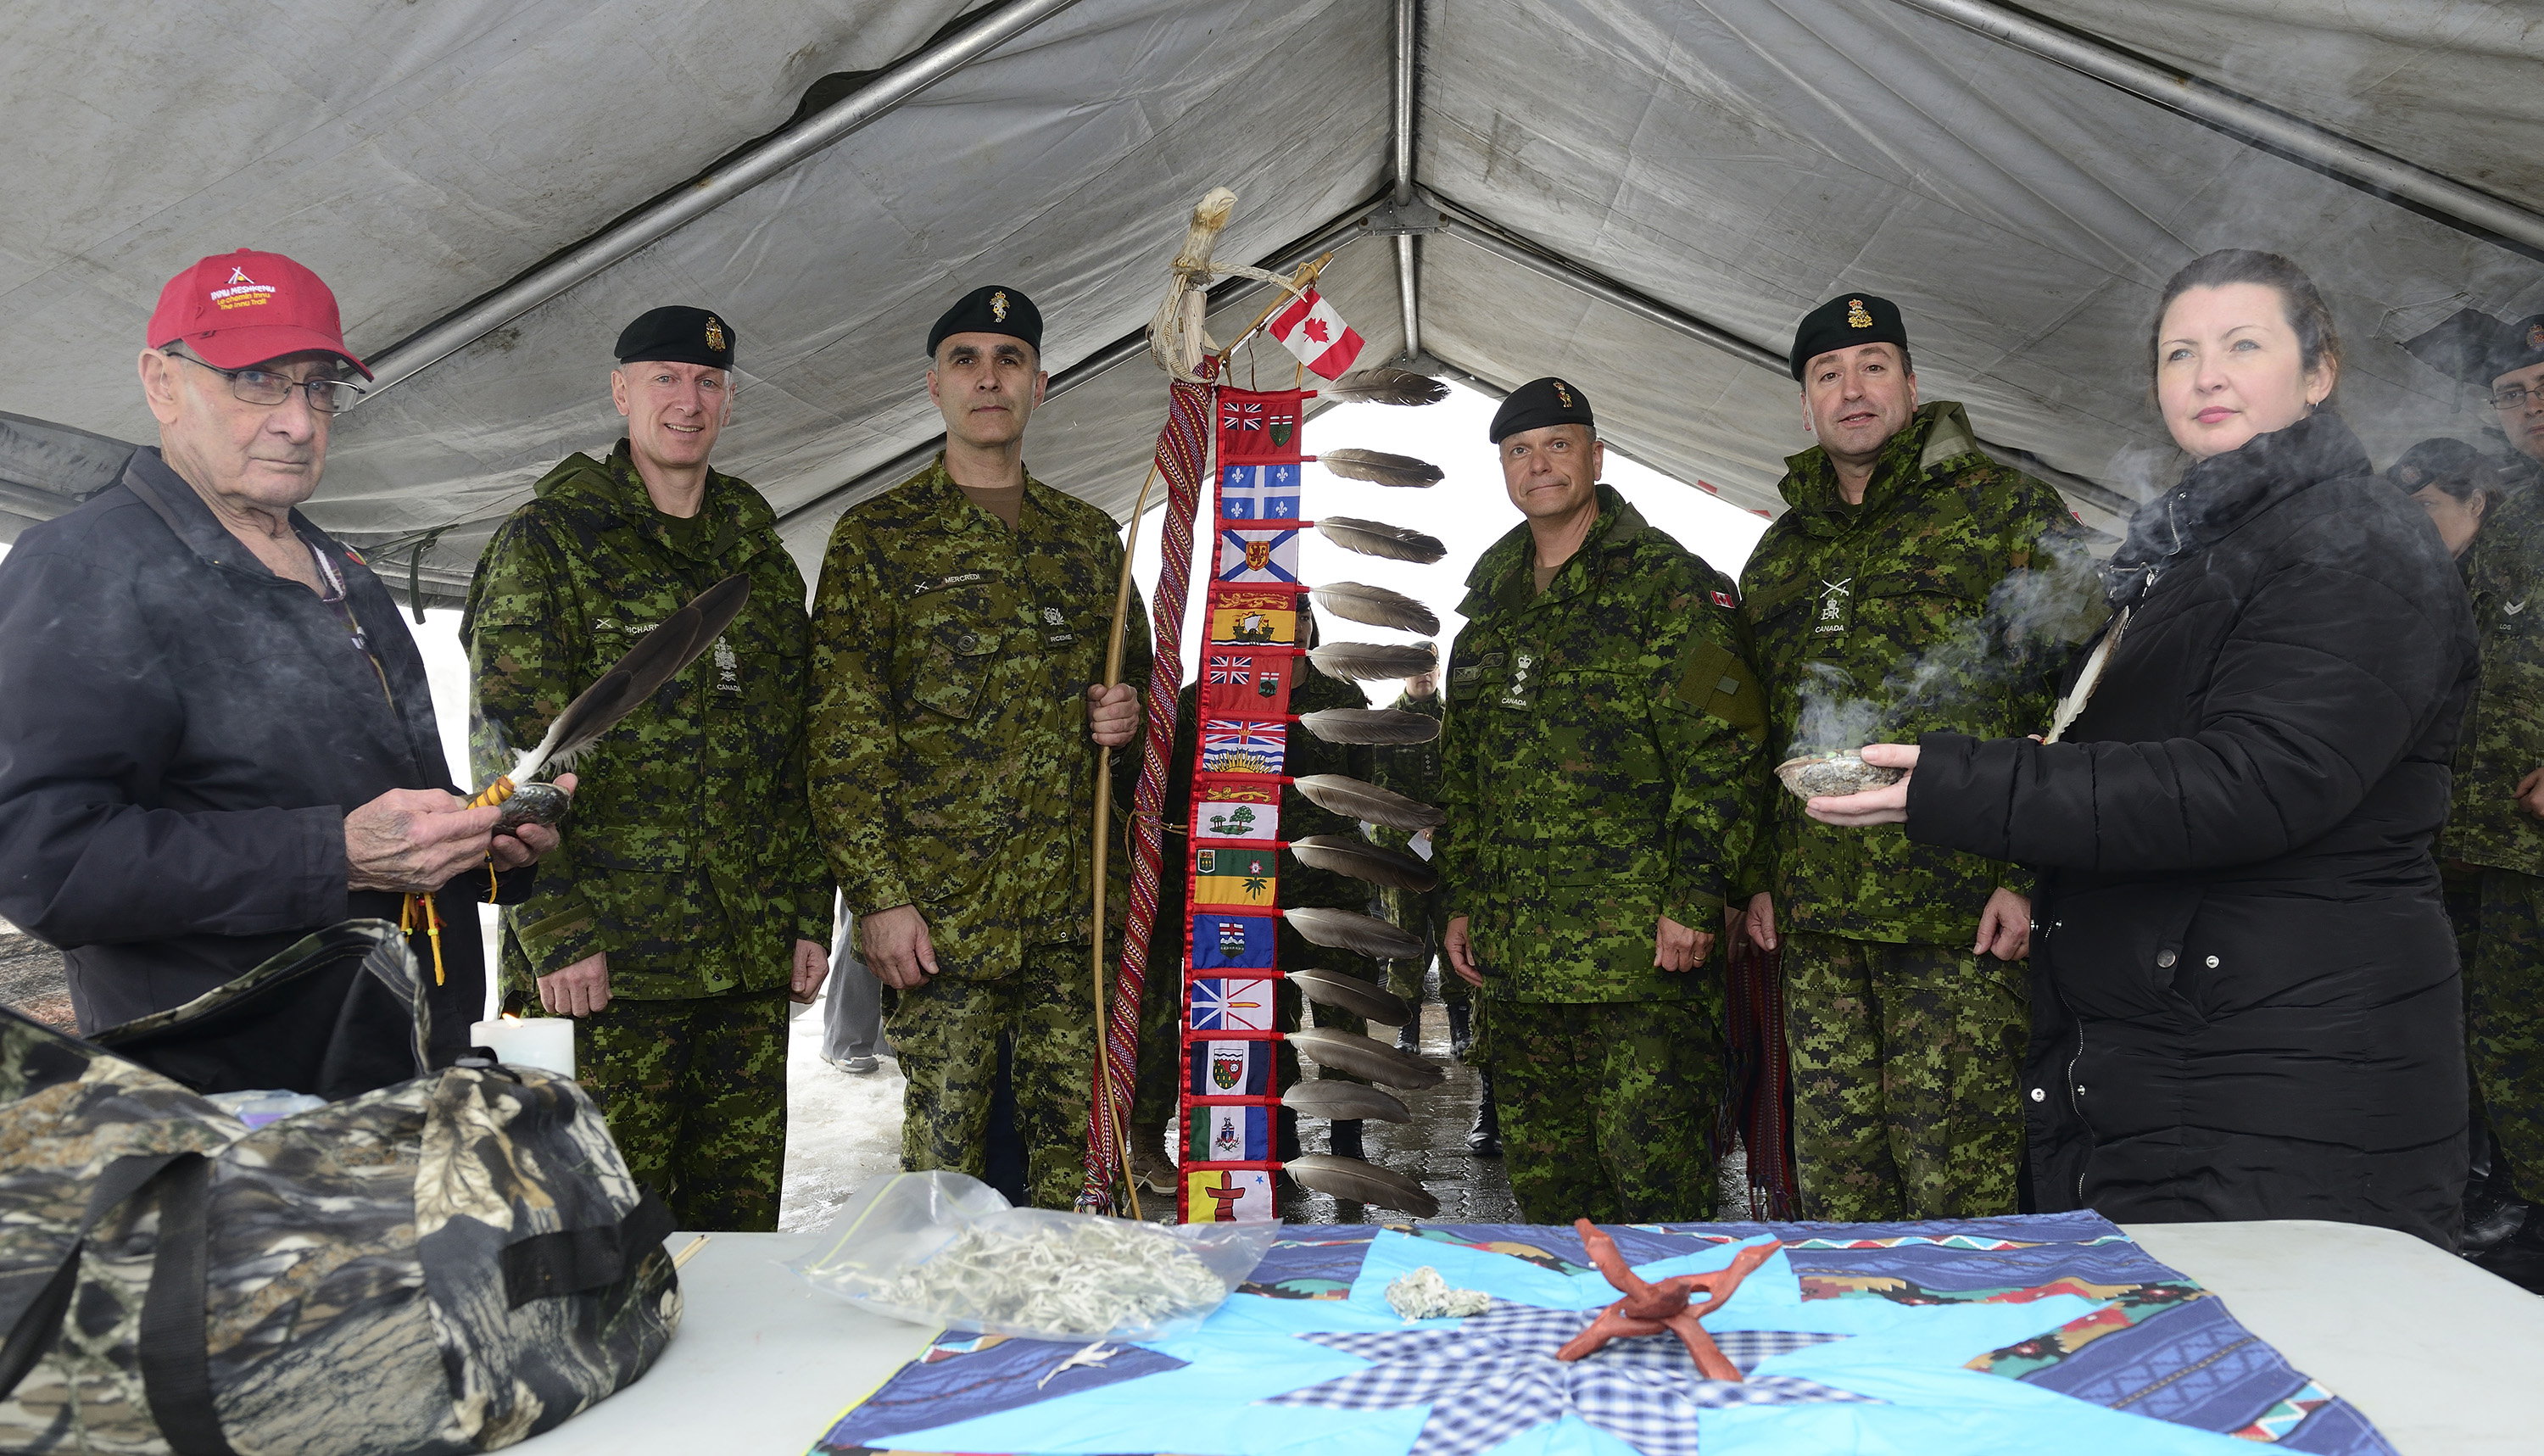 Article | Master Warrant Officer Stan Mercredi - A proud